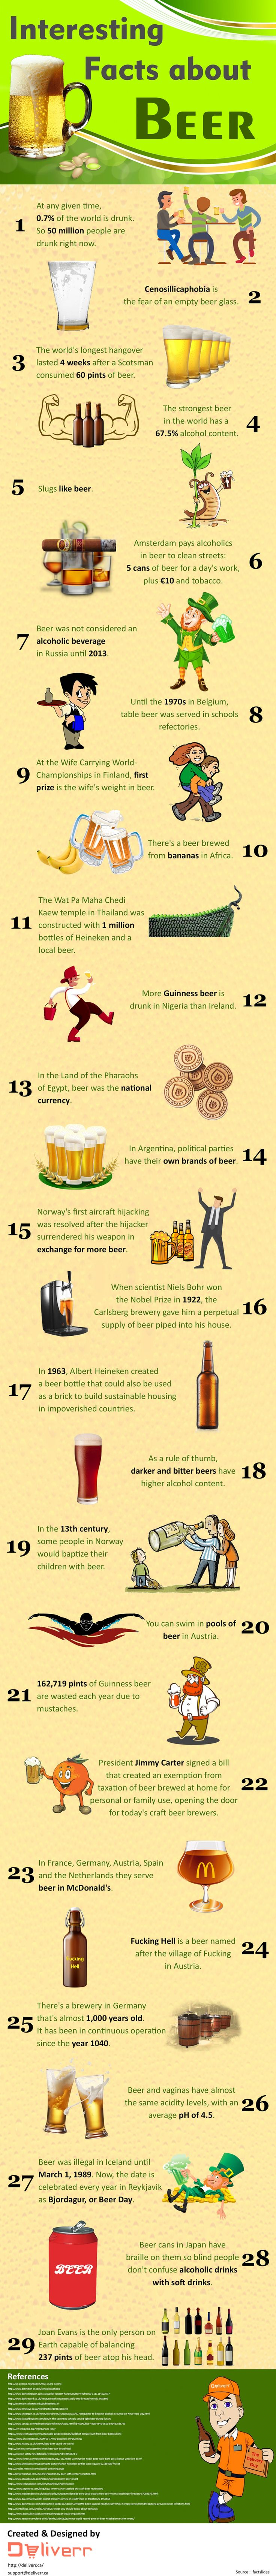 Beer is good, beer is great, beer is ancient! The history of beer dates back to B.C! Beer started to be produced when the nomad lifestyle became less popular and people started to settle into farming. Beer in it's early days was described as a gift from the gods and was drank through a straw! Beer's history can be found all over the globe - even the church was involved in beer brewing! Check out our infographic to learn more about everyone's favourite drink. #Interesting_Facts #Facts #Beer